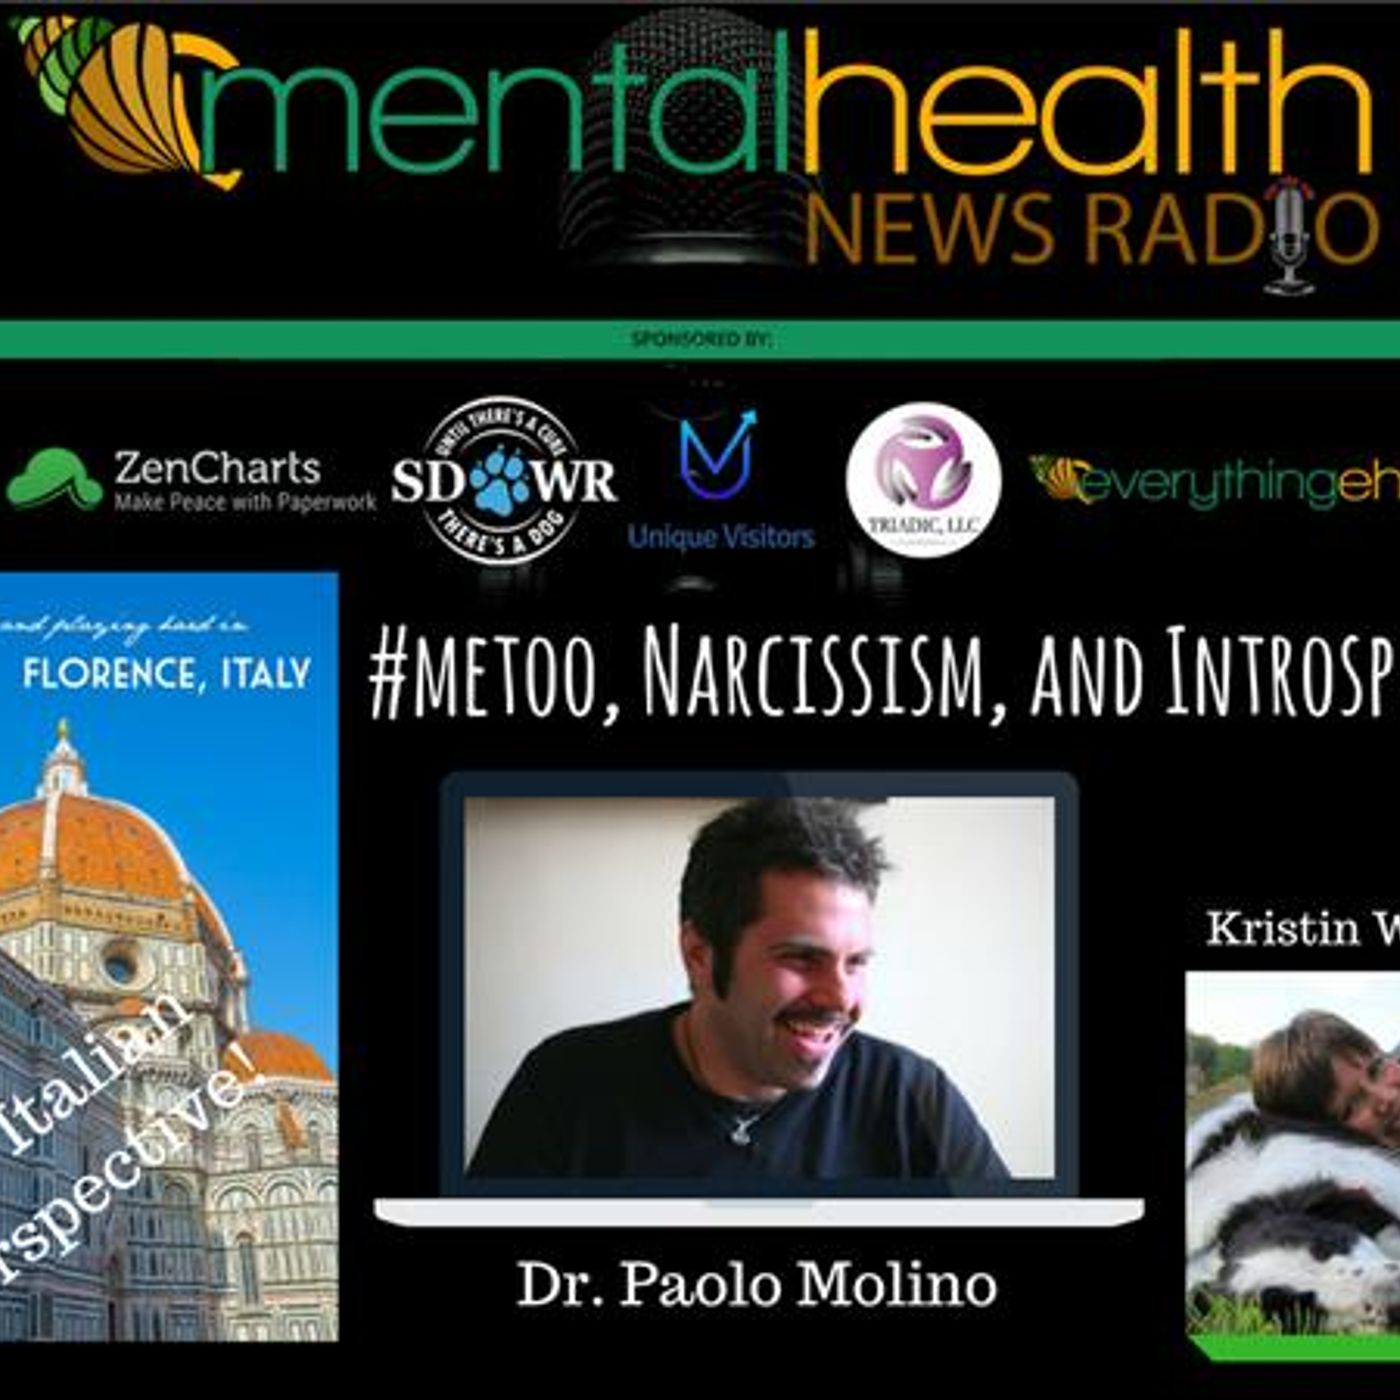 Mental Health News Radio - The Italian Perspective: #metoo, Narcissism, and Introspection: Dr. Paolo Molino